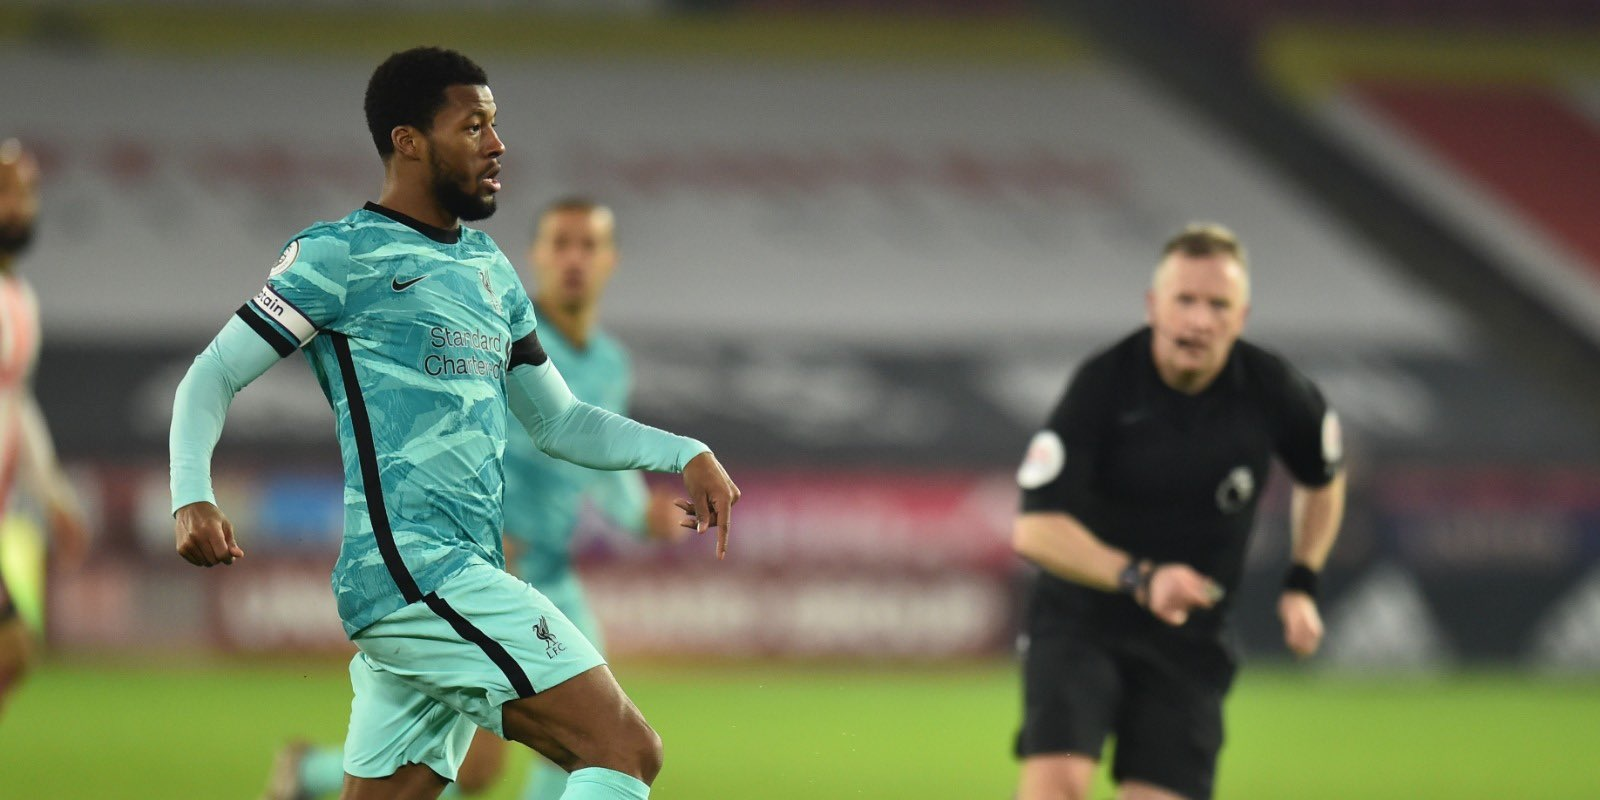 New report claims Wijnaldum transfer to Barcelona extremely close to completion